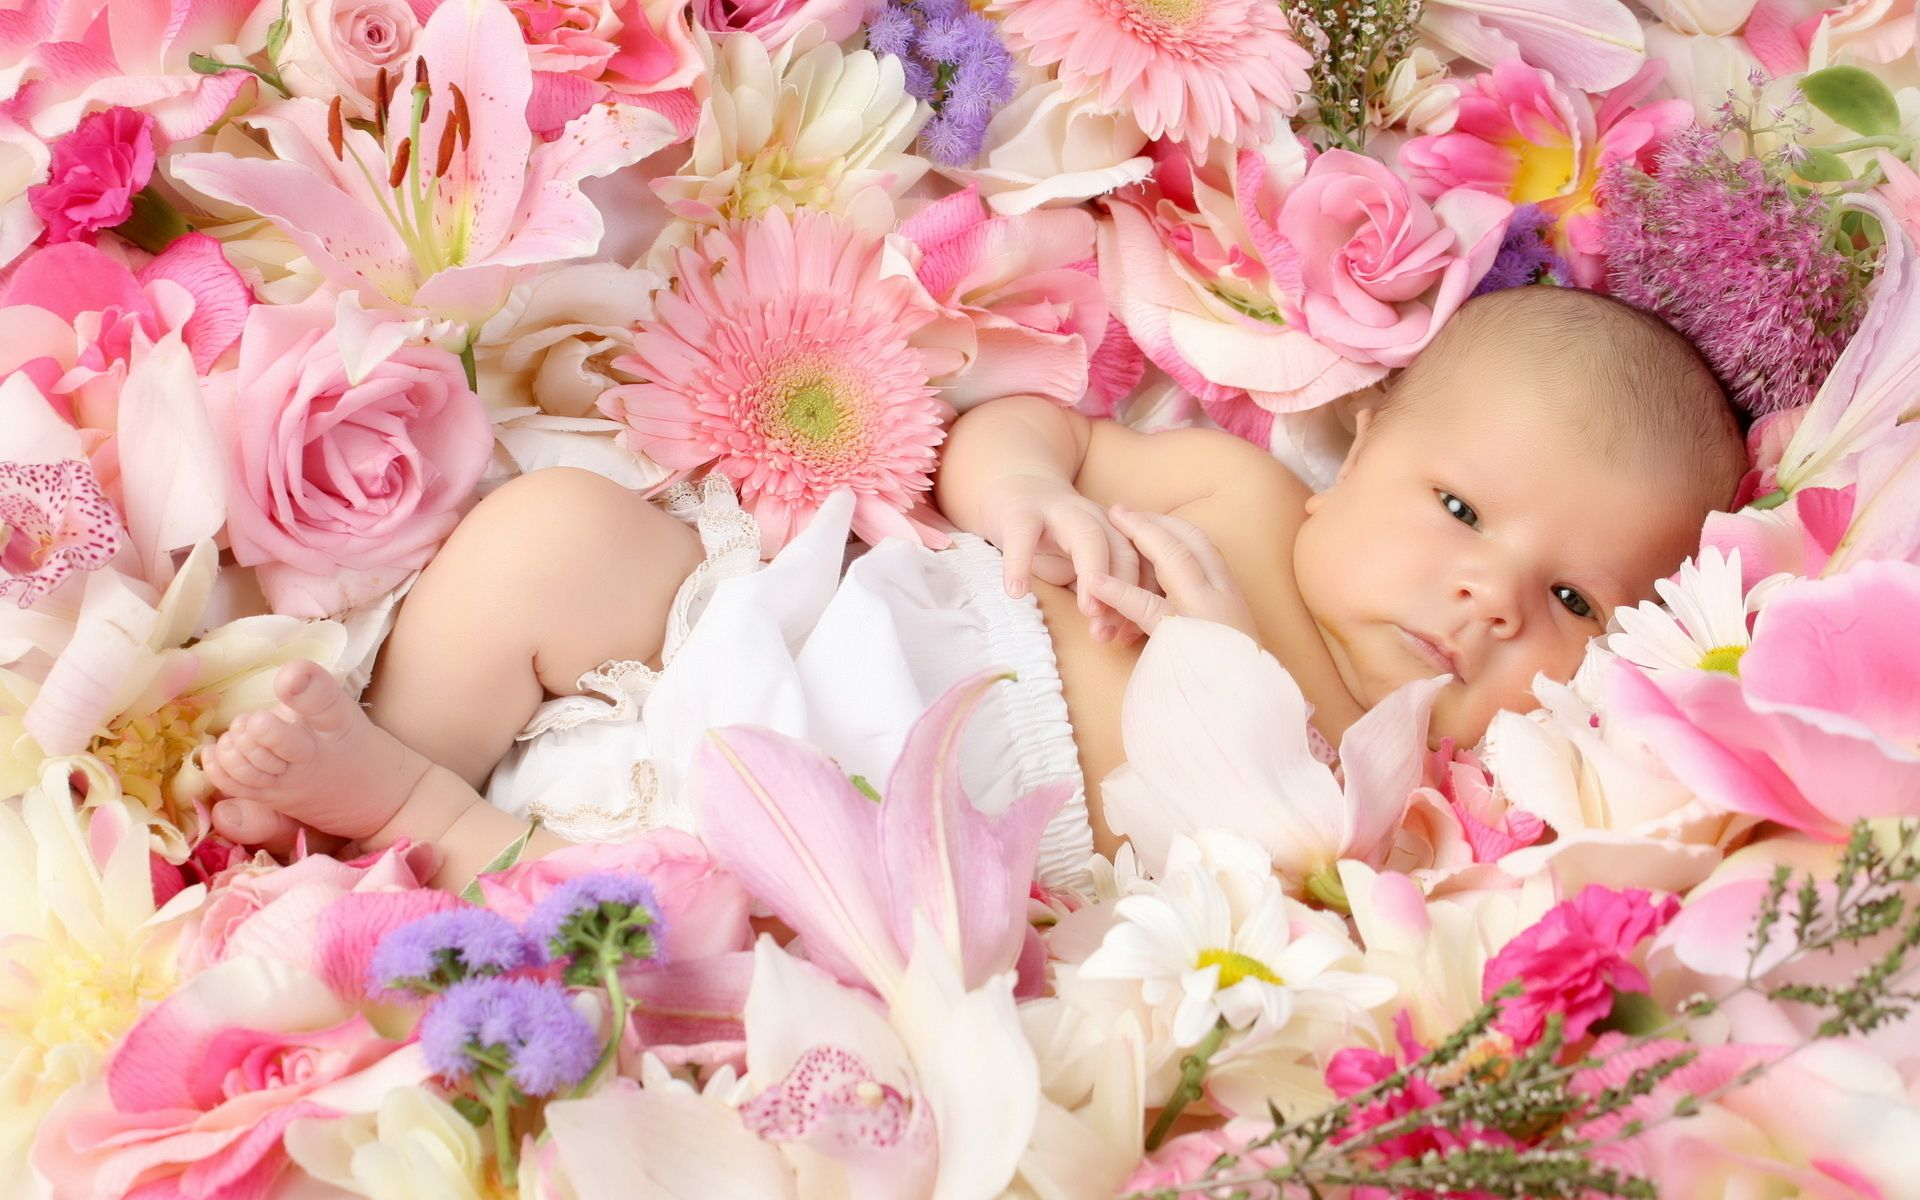 Image result for a baby with flowers